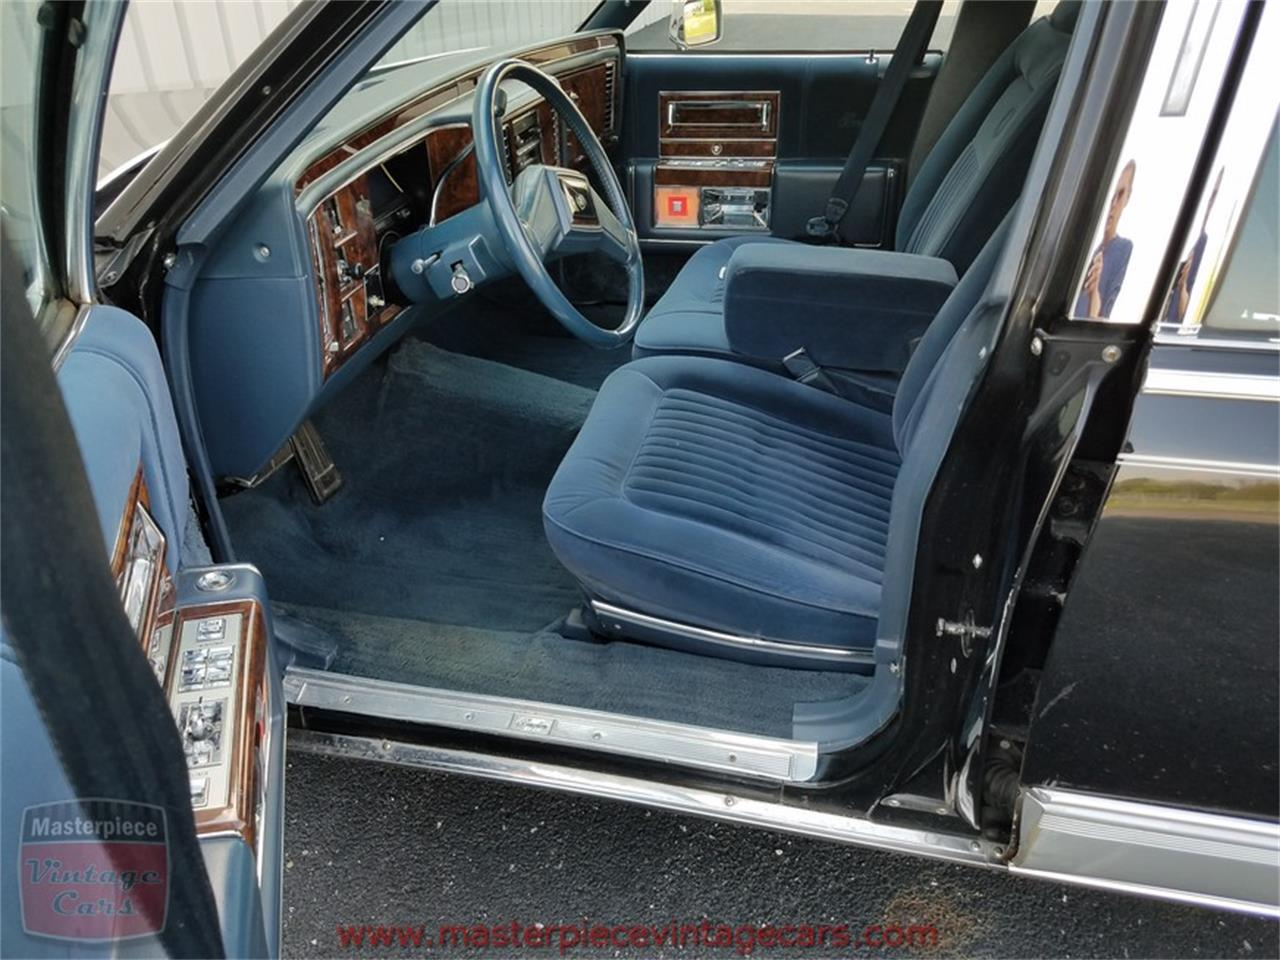 1991 Cadillac Brougham for sale in Whiteland, IN – photo 12